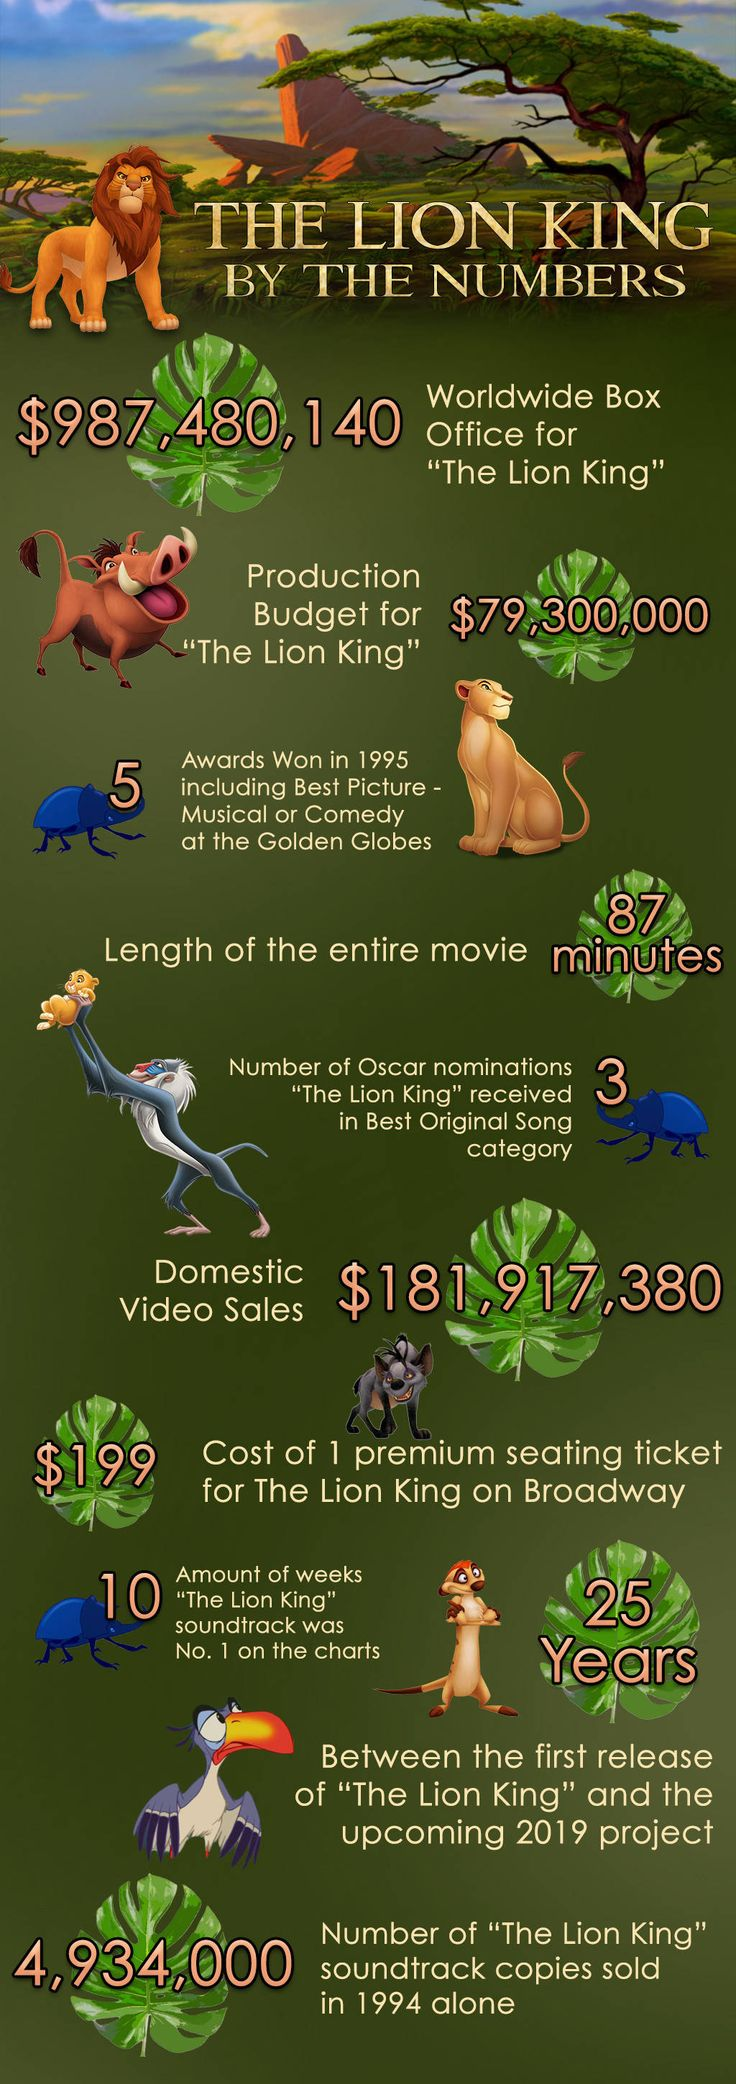 The Lion King By the Numbers: How Simba, Timon and Pumbaa Helped Create a Disney Classic - https://blog.clairepeetz.com/the-lion-king-by-the-numbers-how-simba-timon-and-pumbaa-helped-create-a-disney-classic/